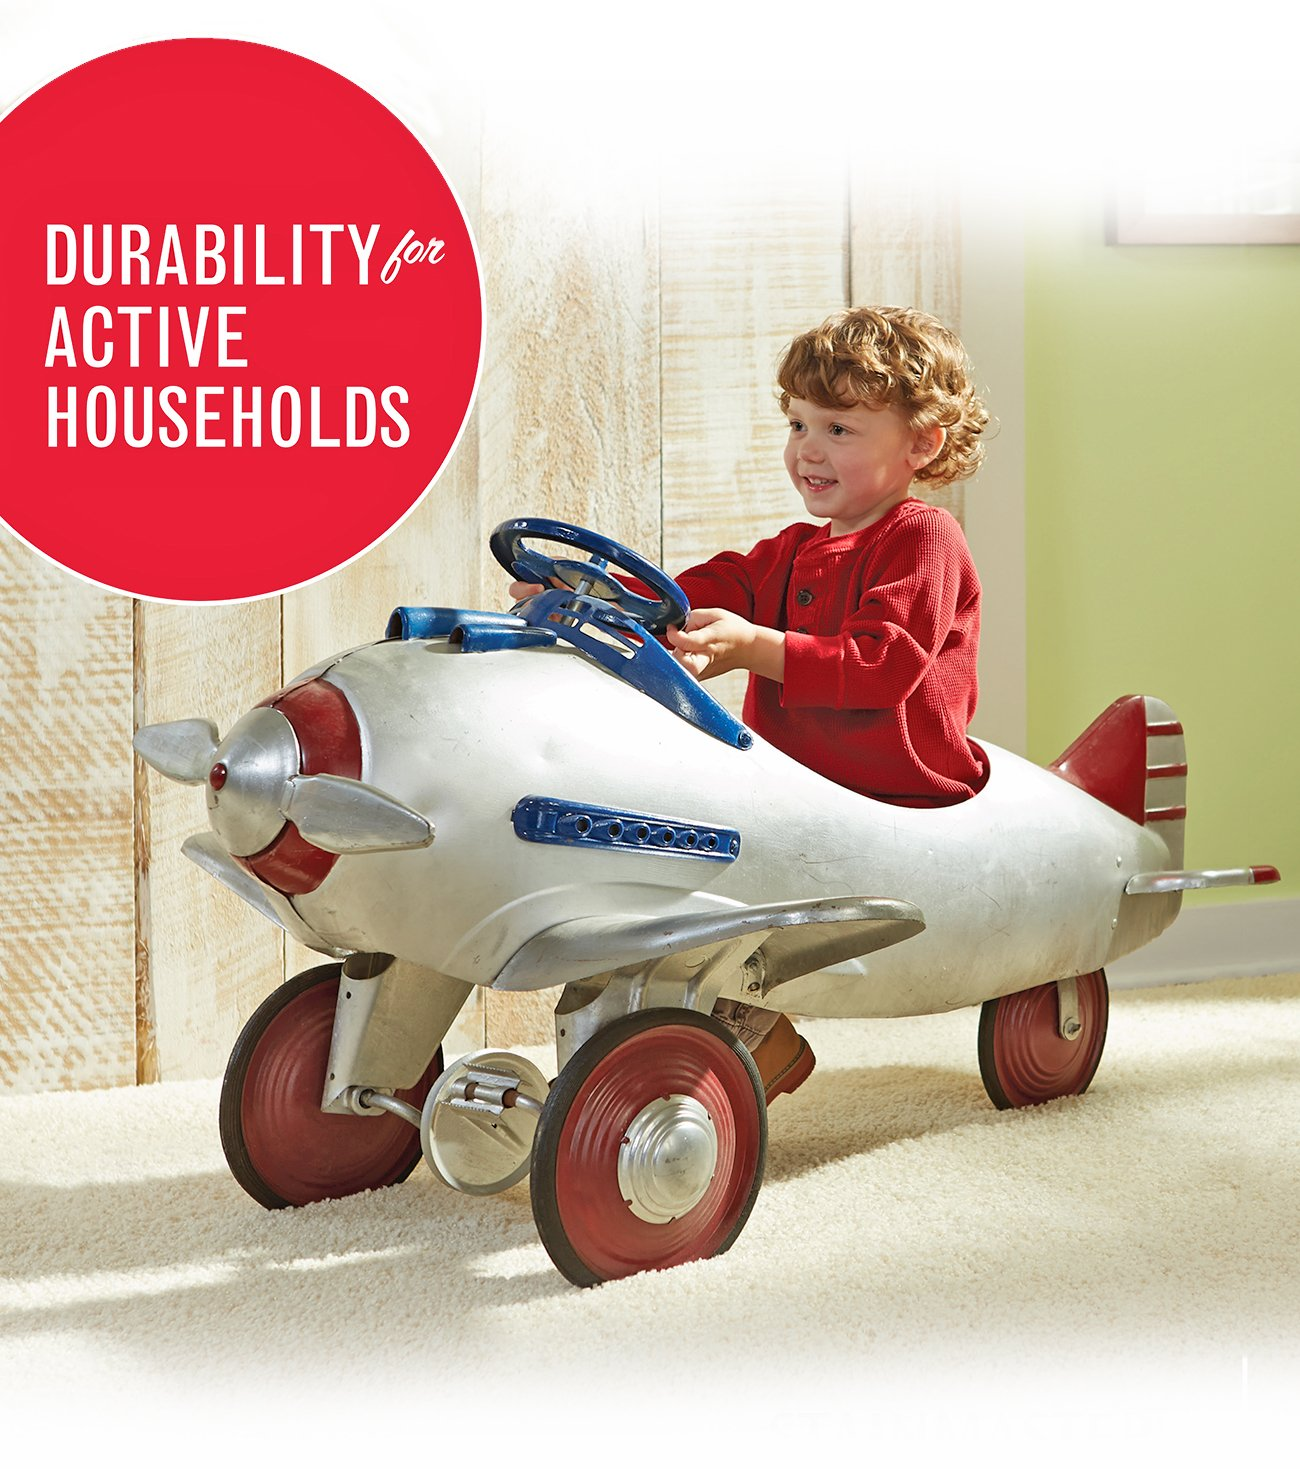 Stainmaster Durability for Active Households